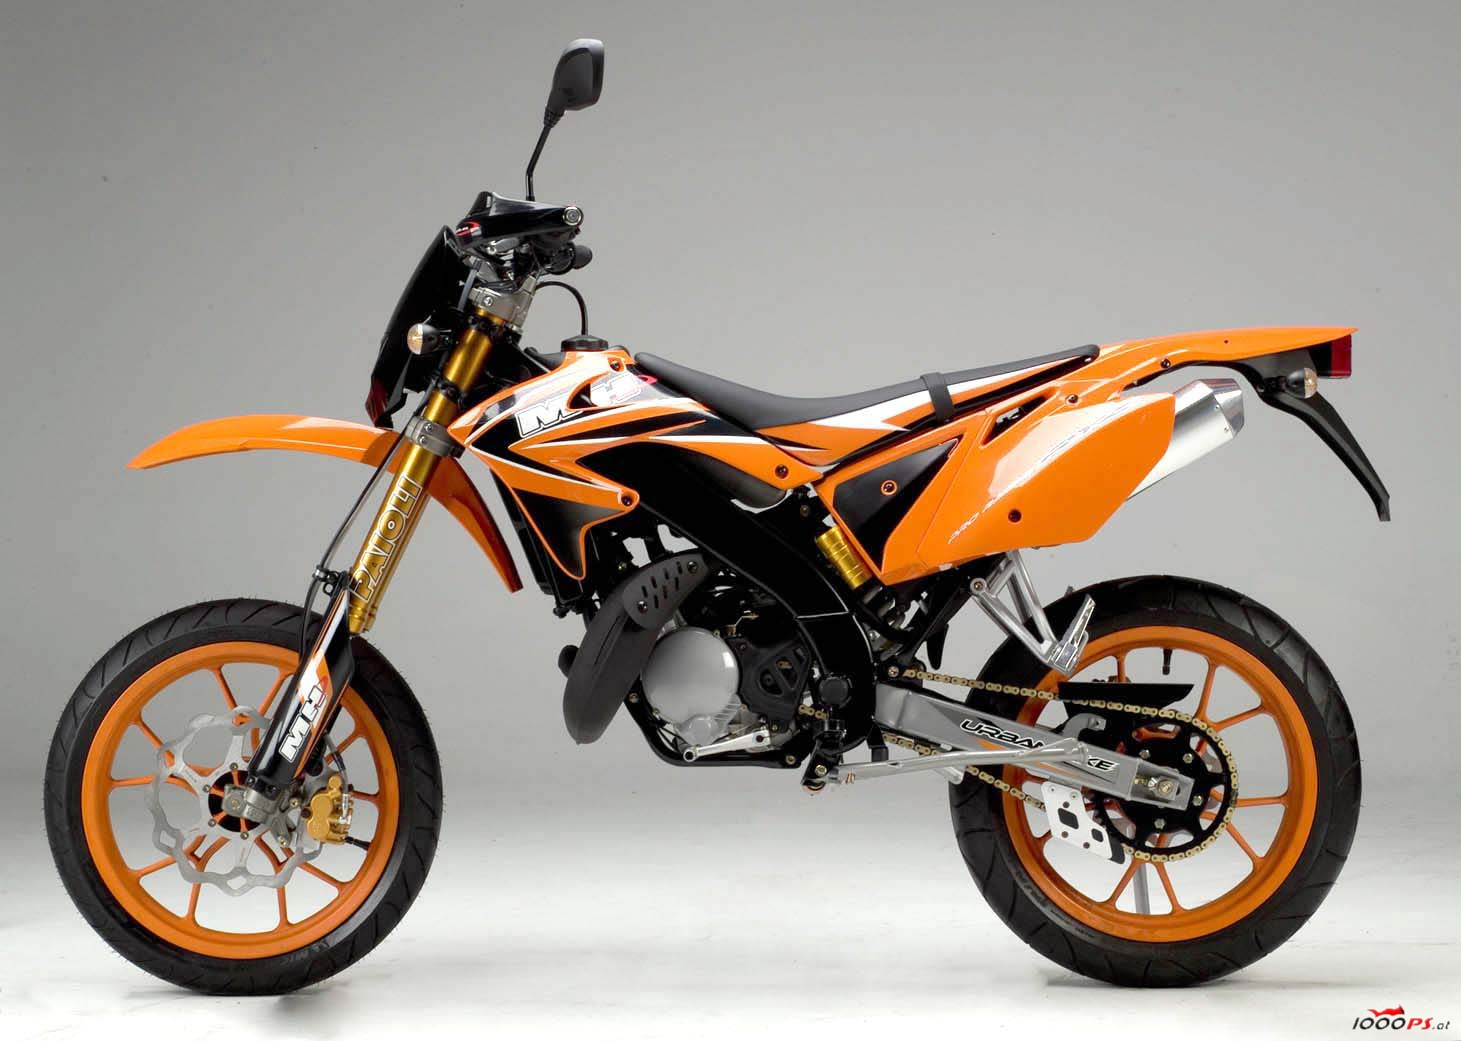 Motorhispania Ryz 50 Super Motard 2007 images #112428